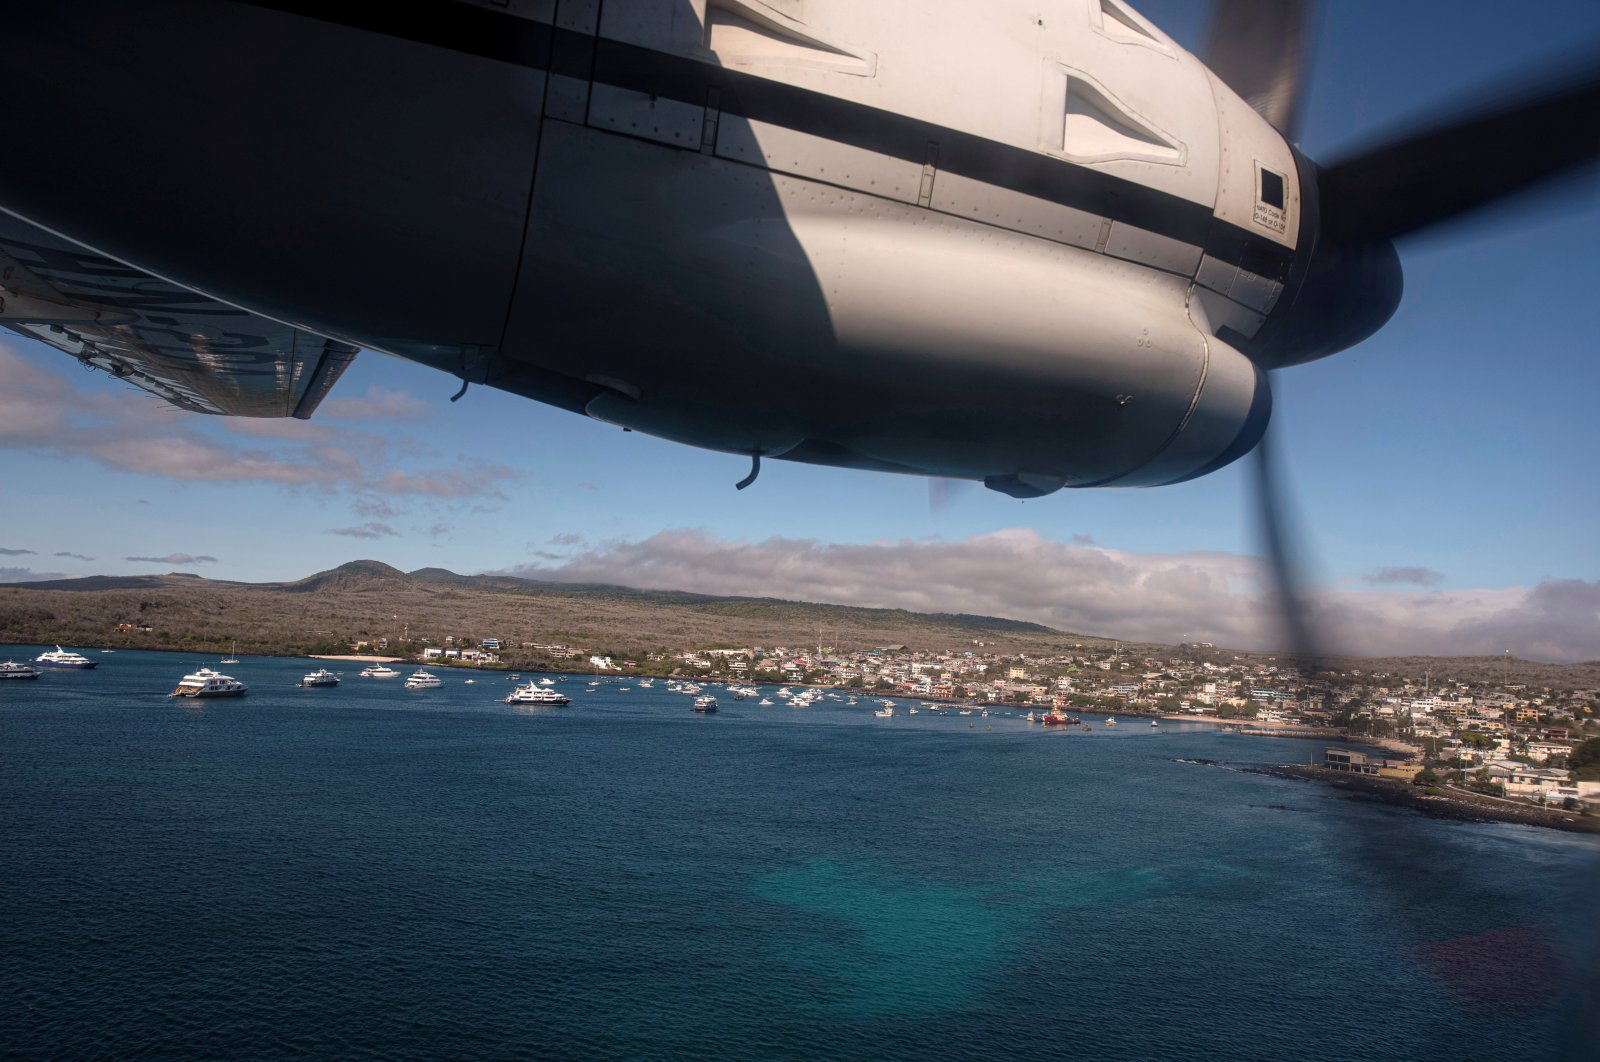 An Ecuadorian navy aircraft prepares to land in San Cristobal after a fishing fleet of mostly Chinese-flagged ships was detected in an international corridor that borders the Galapagos Islands' exclusive economic zone, in San Cristobal, Galapagos Islands, Ecuador, Aug. 7, 2020. (REUTERS/Santiago Arcos)